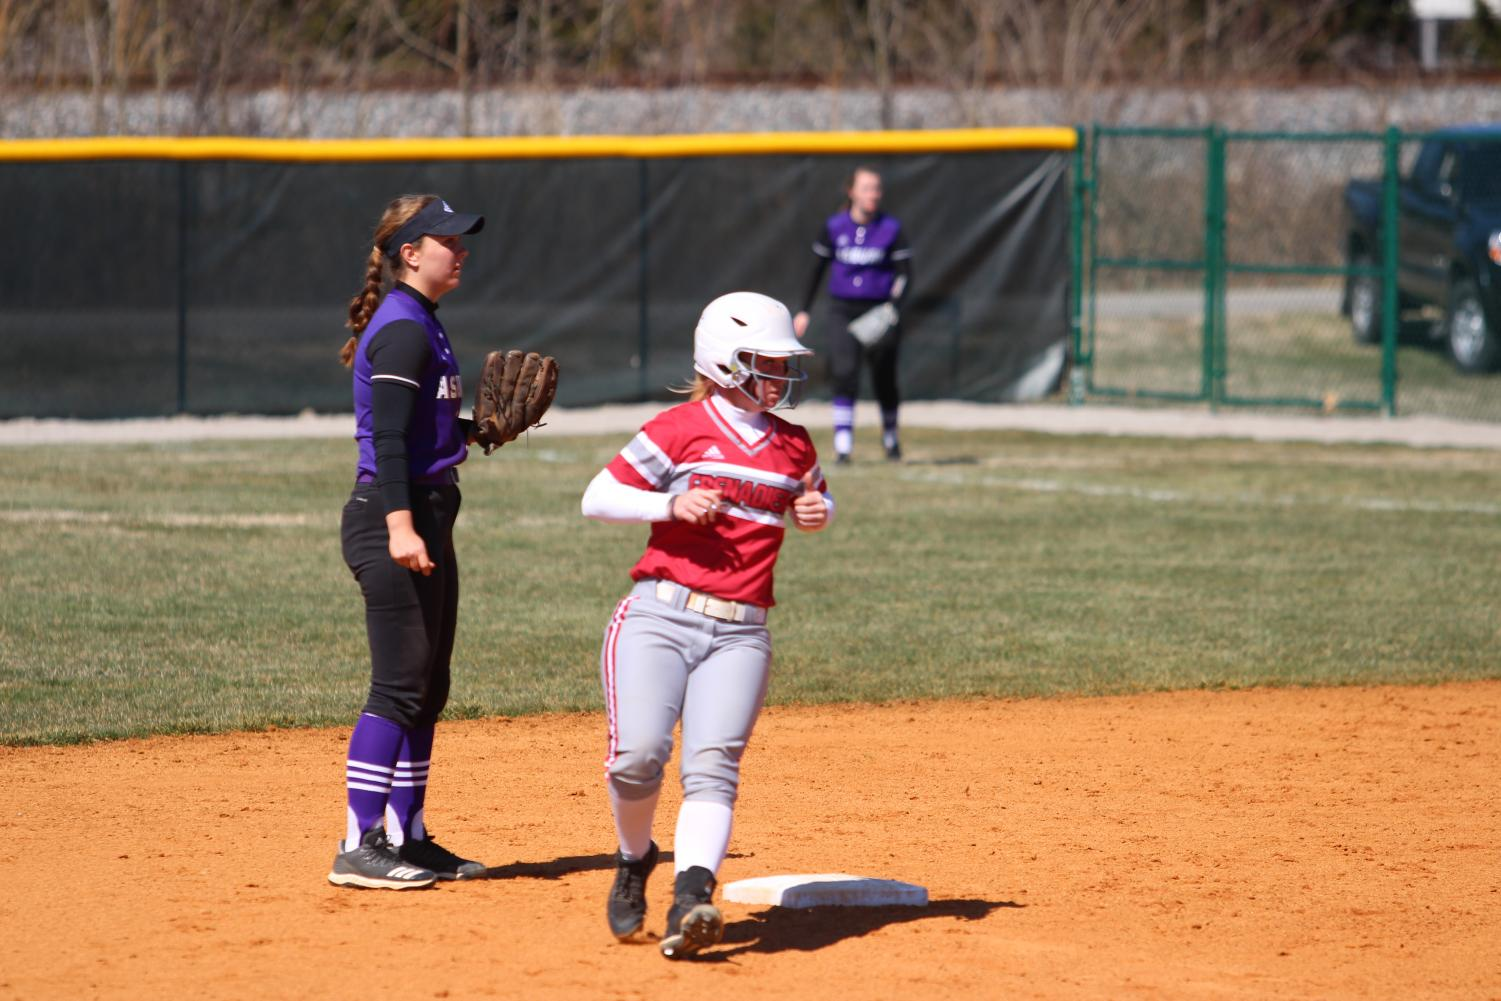 Catcher Justice Kline rounds second base after hitting an RBI double in game one of last Saturday's doubleheader versus Asbury University.